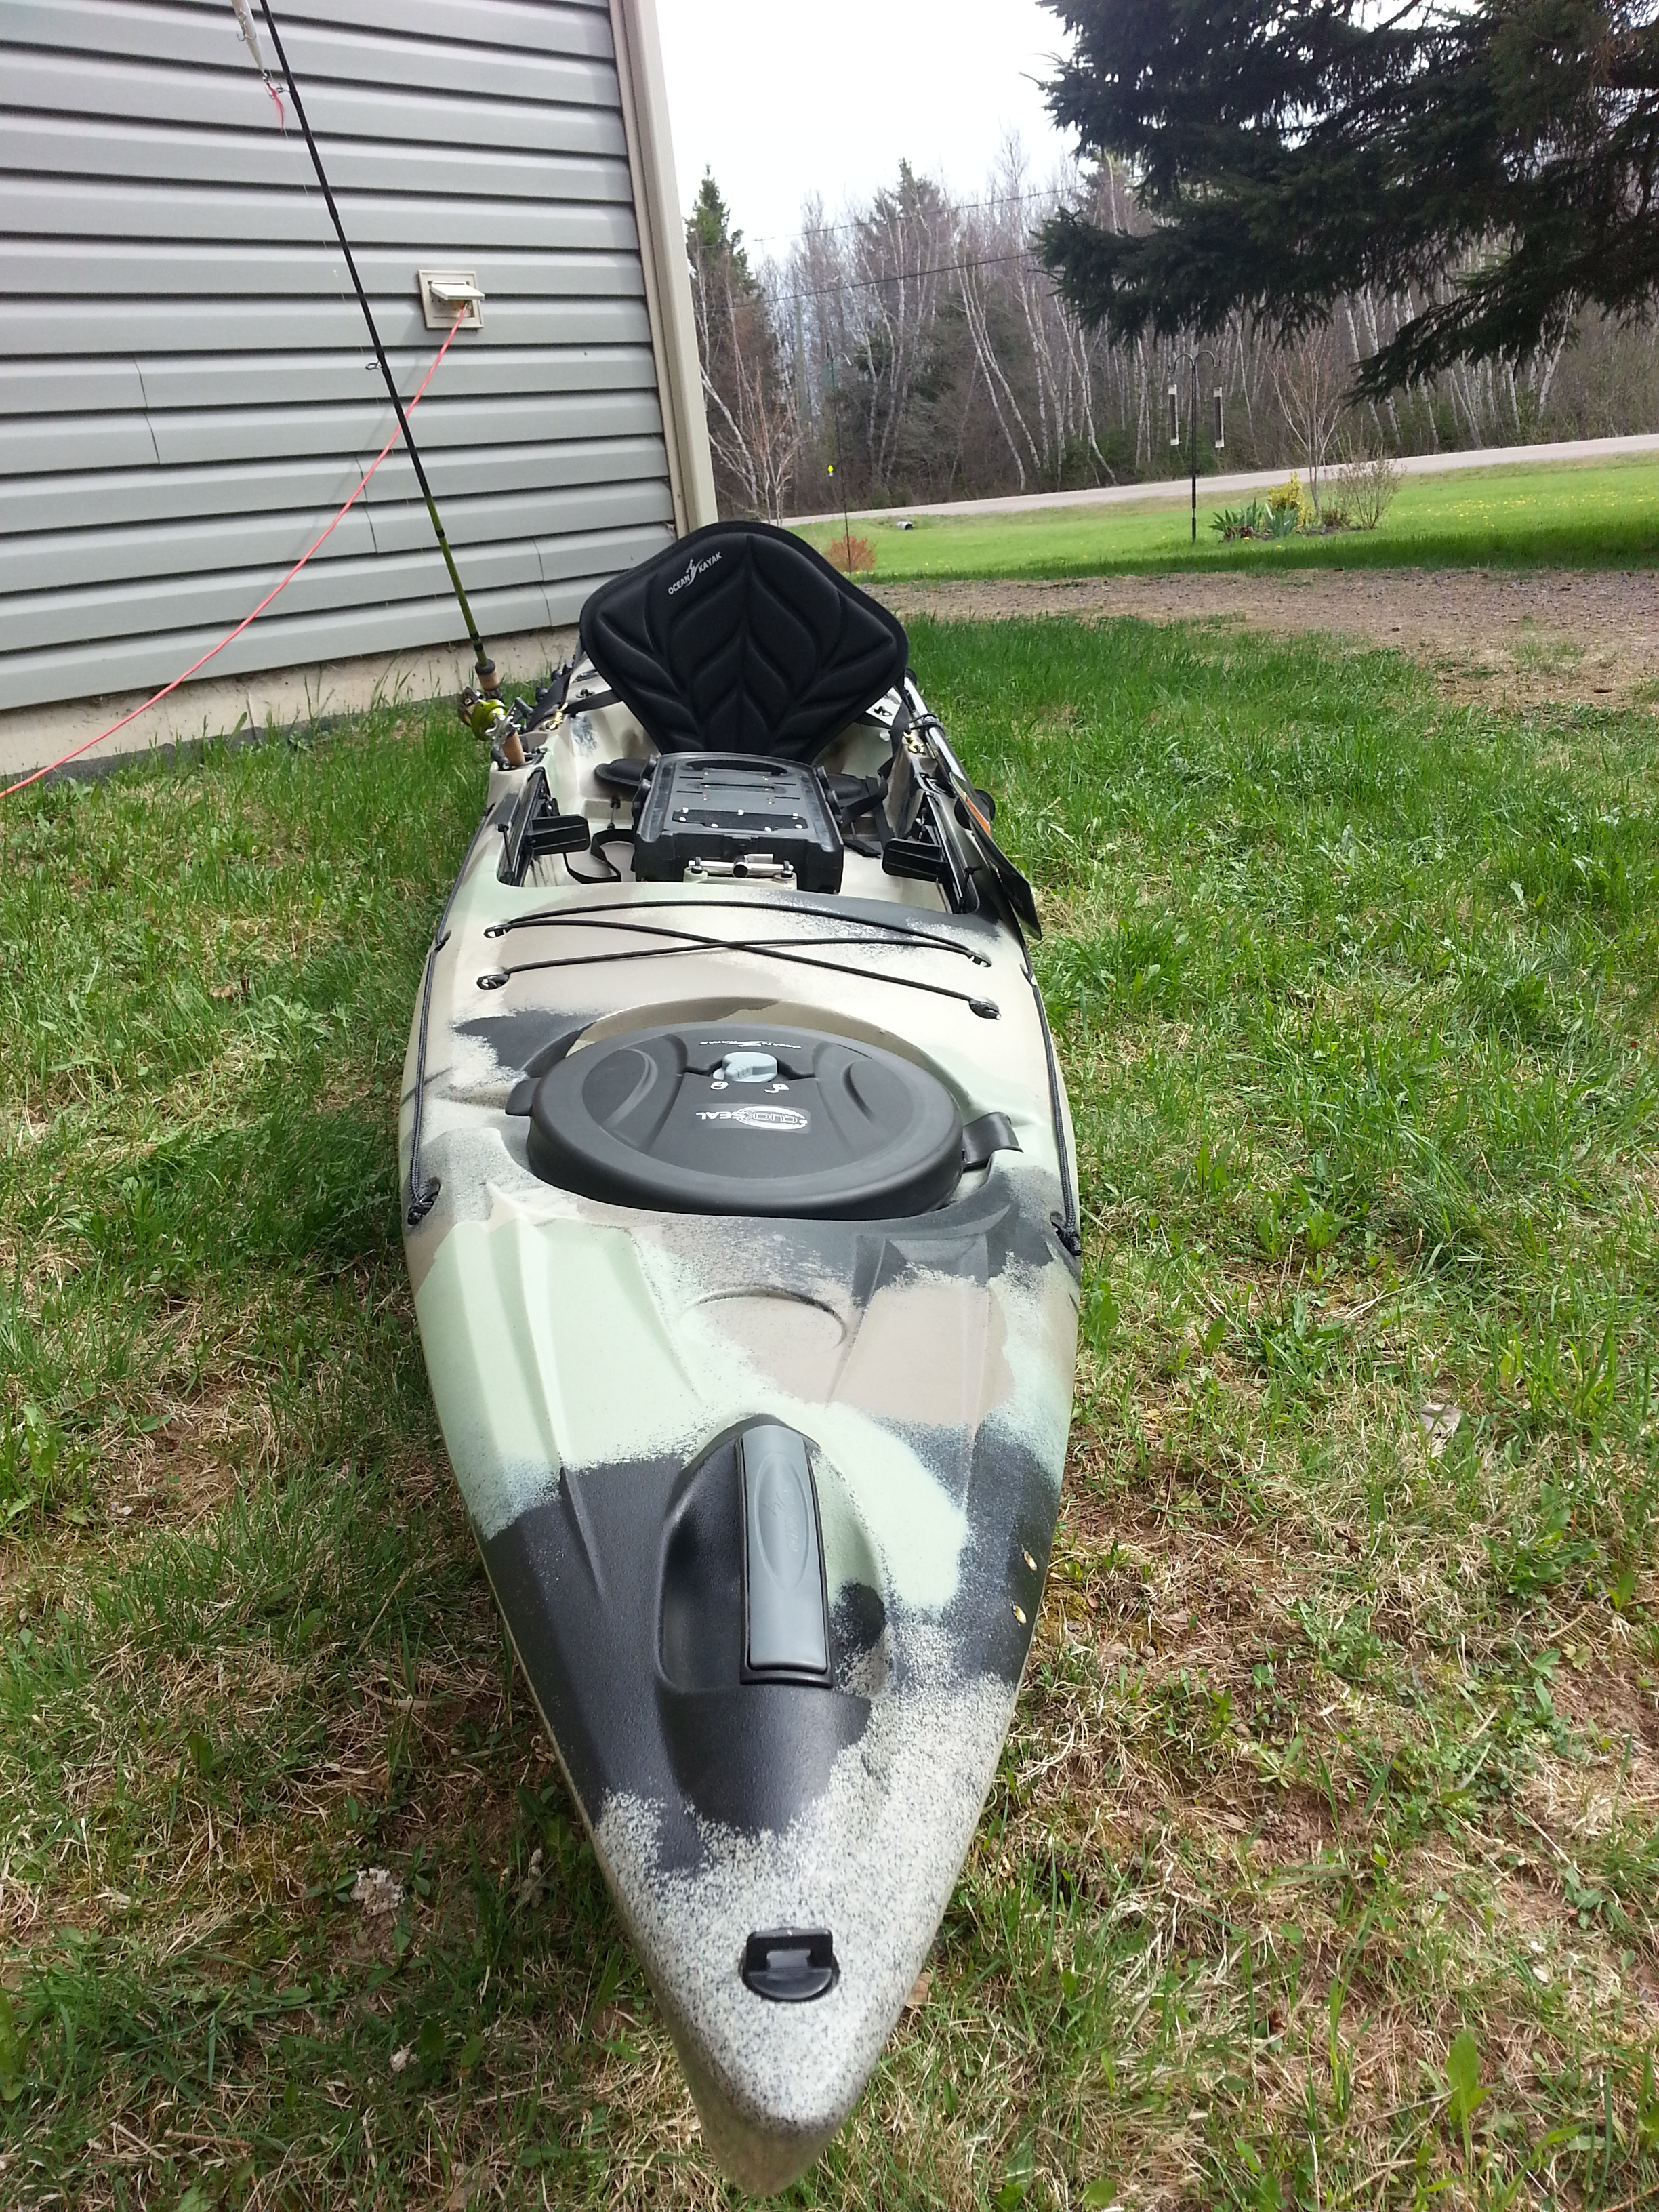 Job Lot Kayak : kayak, Reviews, Gibson, Outdoors